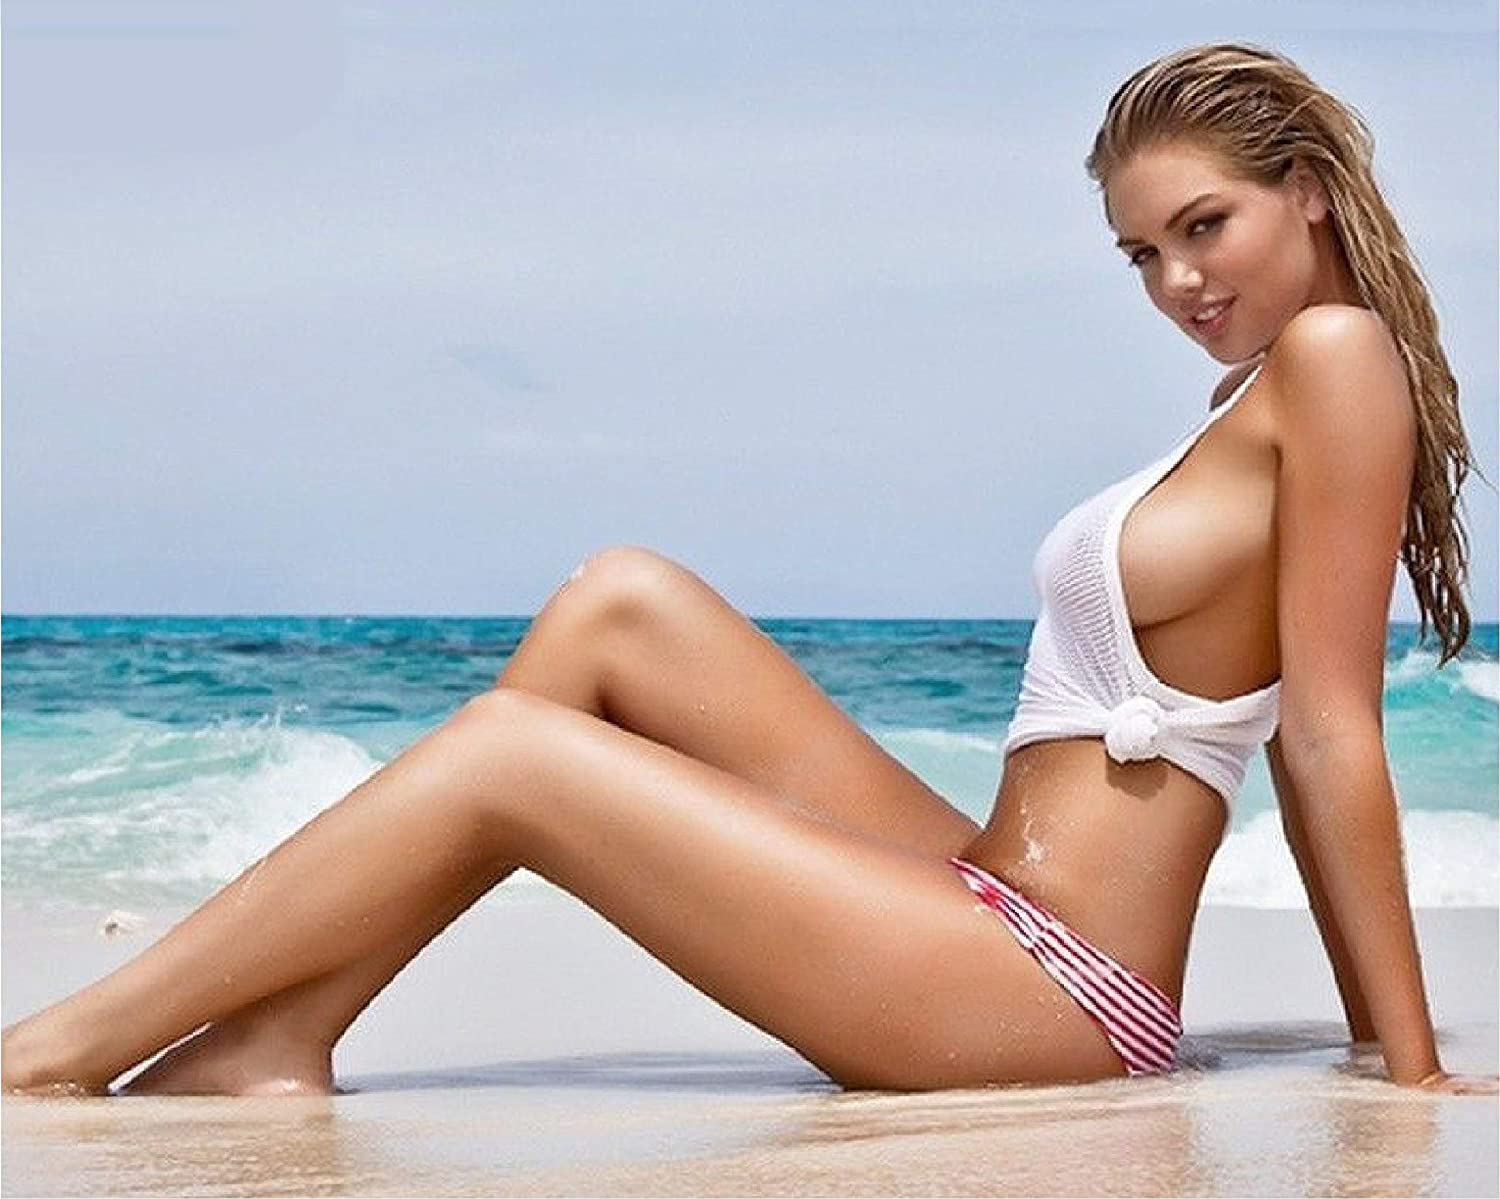 Kate Upton 8x10 11x14 Photo No Image is Cropped No white or black borders What you see is what you get Clock #MS0091